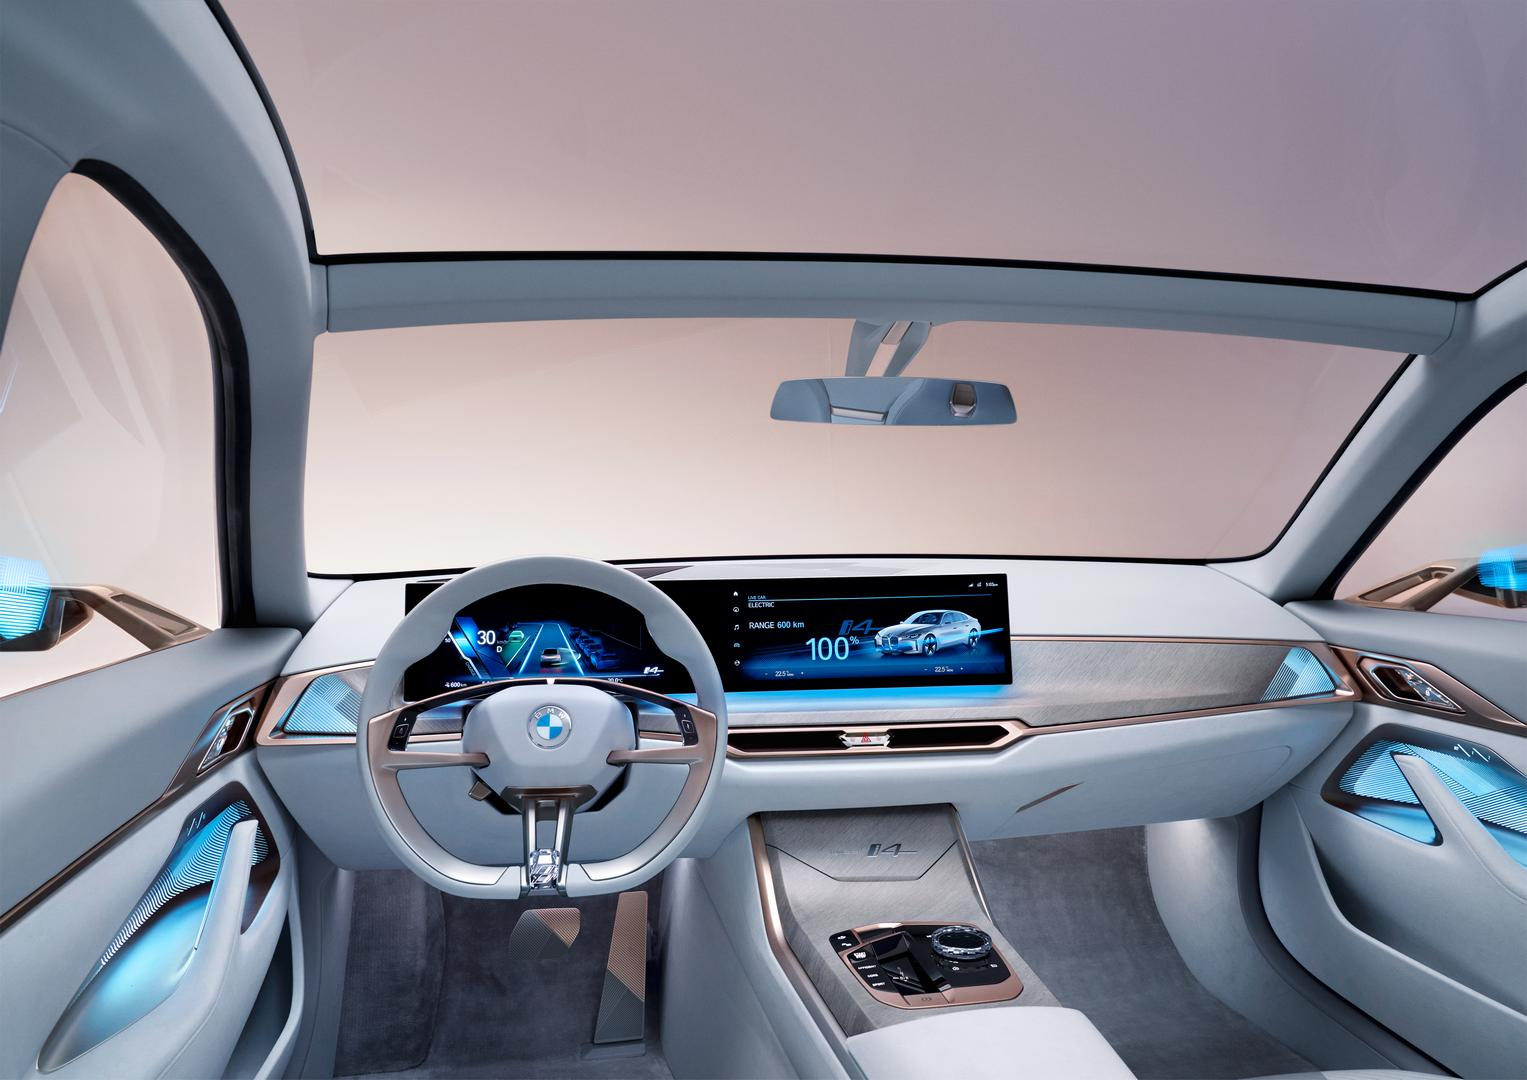 BMW Concept i4 Cabin